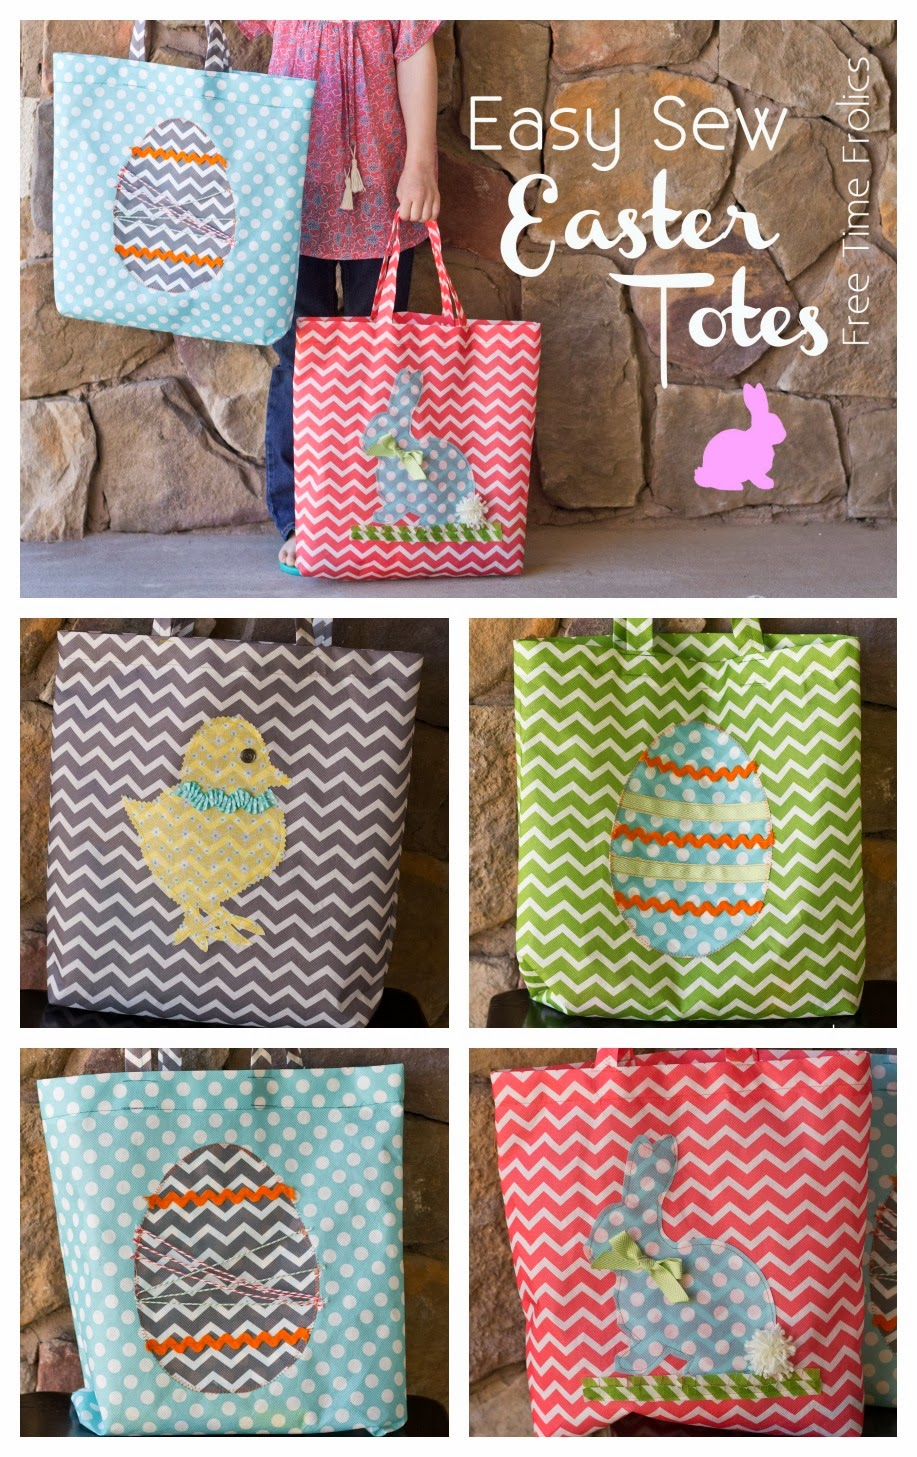 Easy DIY Easter totes via www.freetimefrolics.com